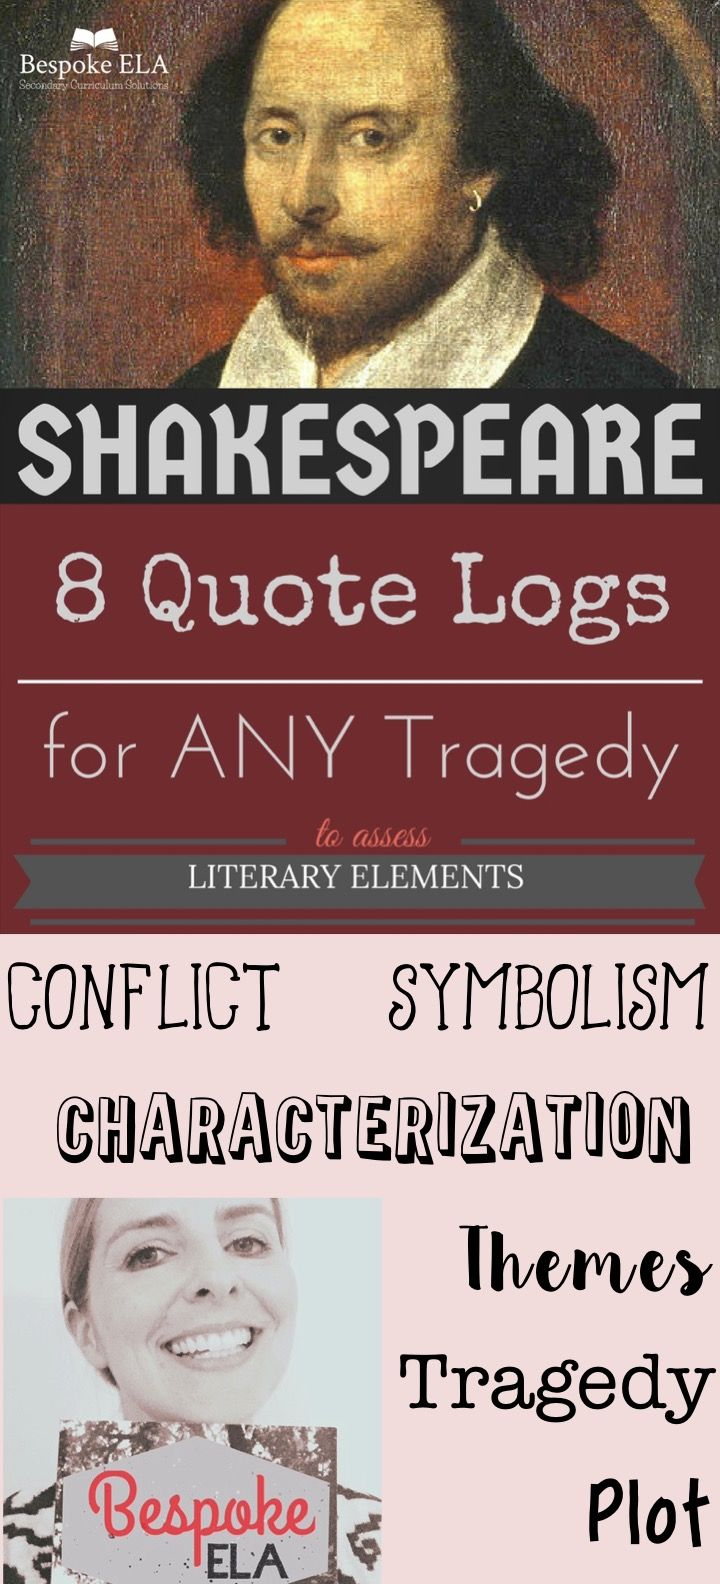 This product by Bespoke ELA contains 8 Quote Logs to help students track and assess the literary elements of any Shakespearean tragedy.  Check it out!